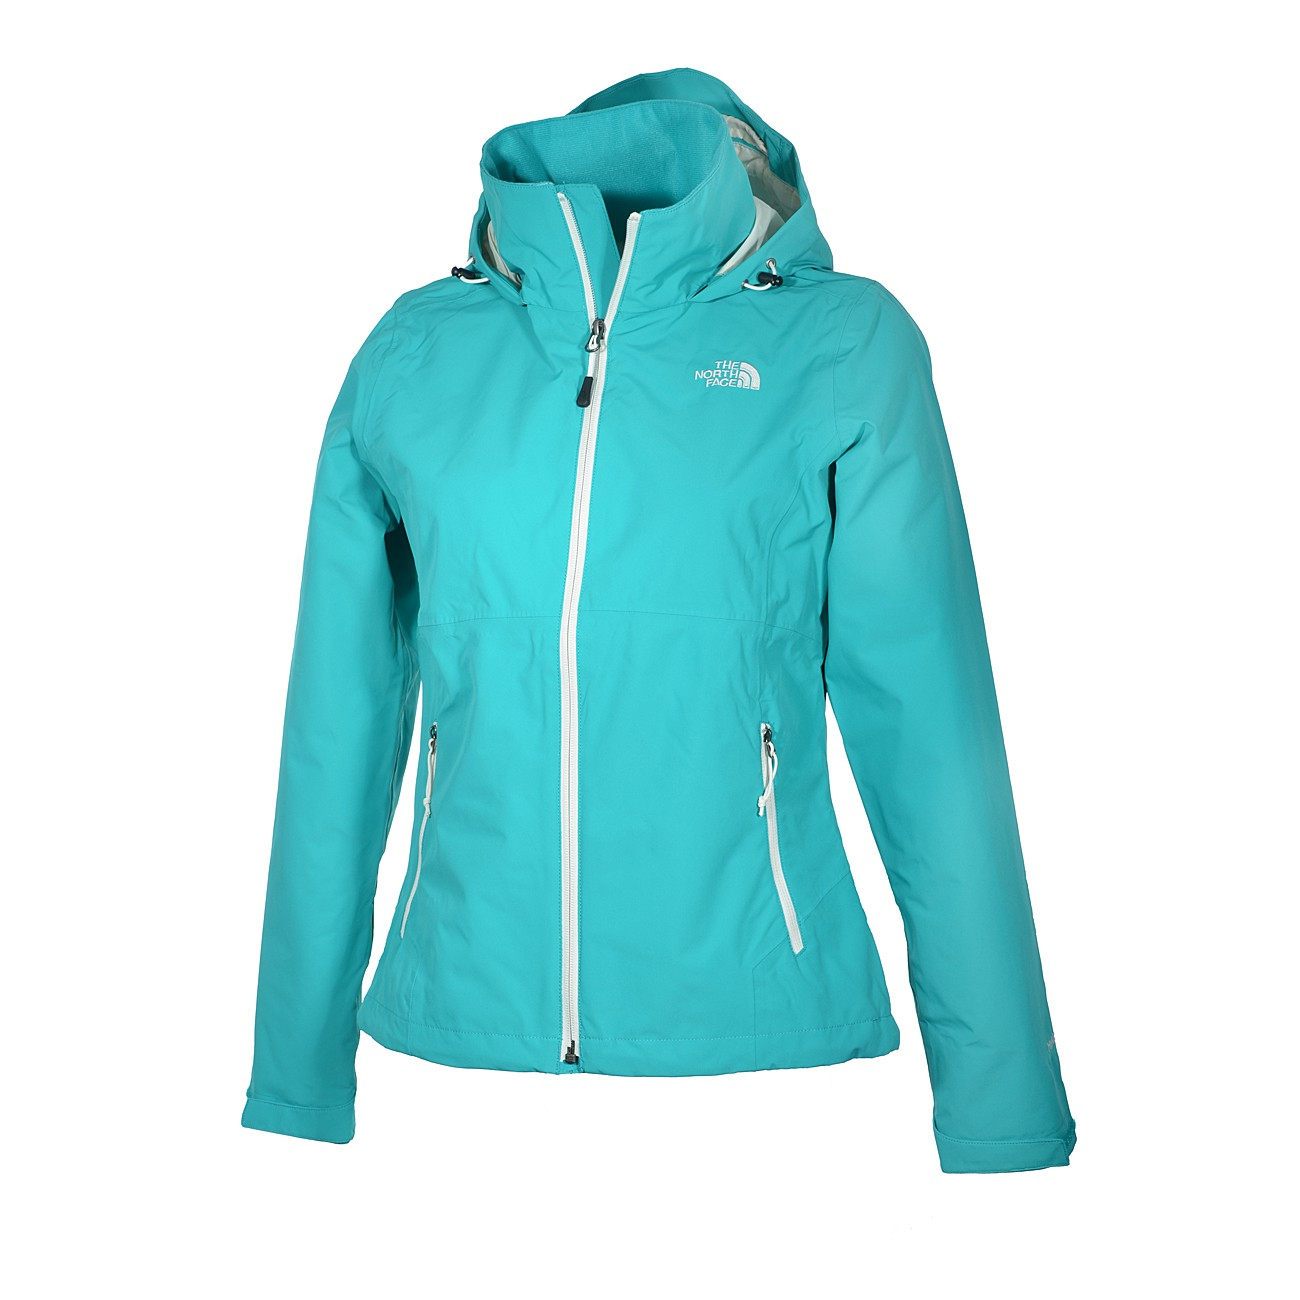 the north face pazzallo damen sommerjacke jacket regenjacke jaiden green ebay. Black Bedroom Furniture Sets. Home Design Ideas